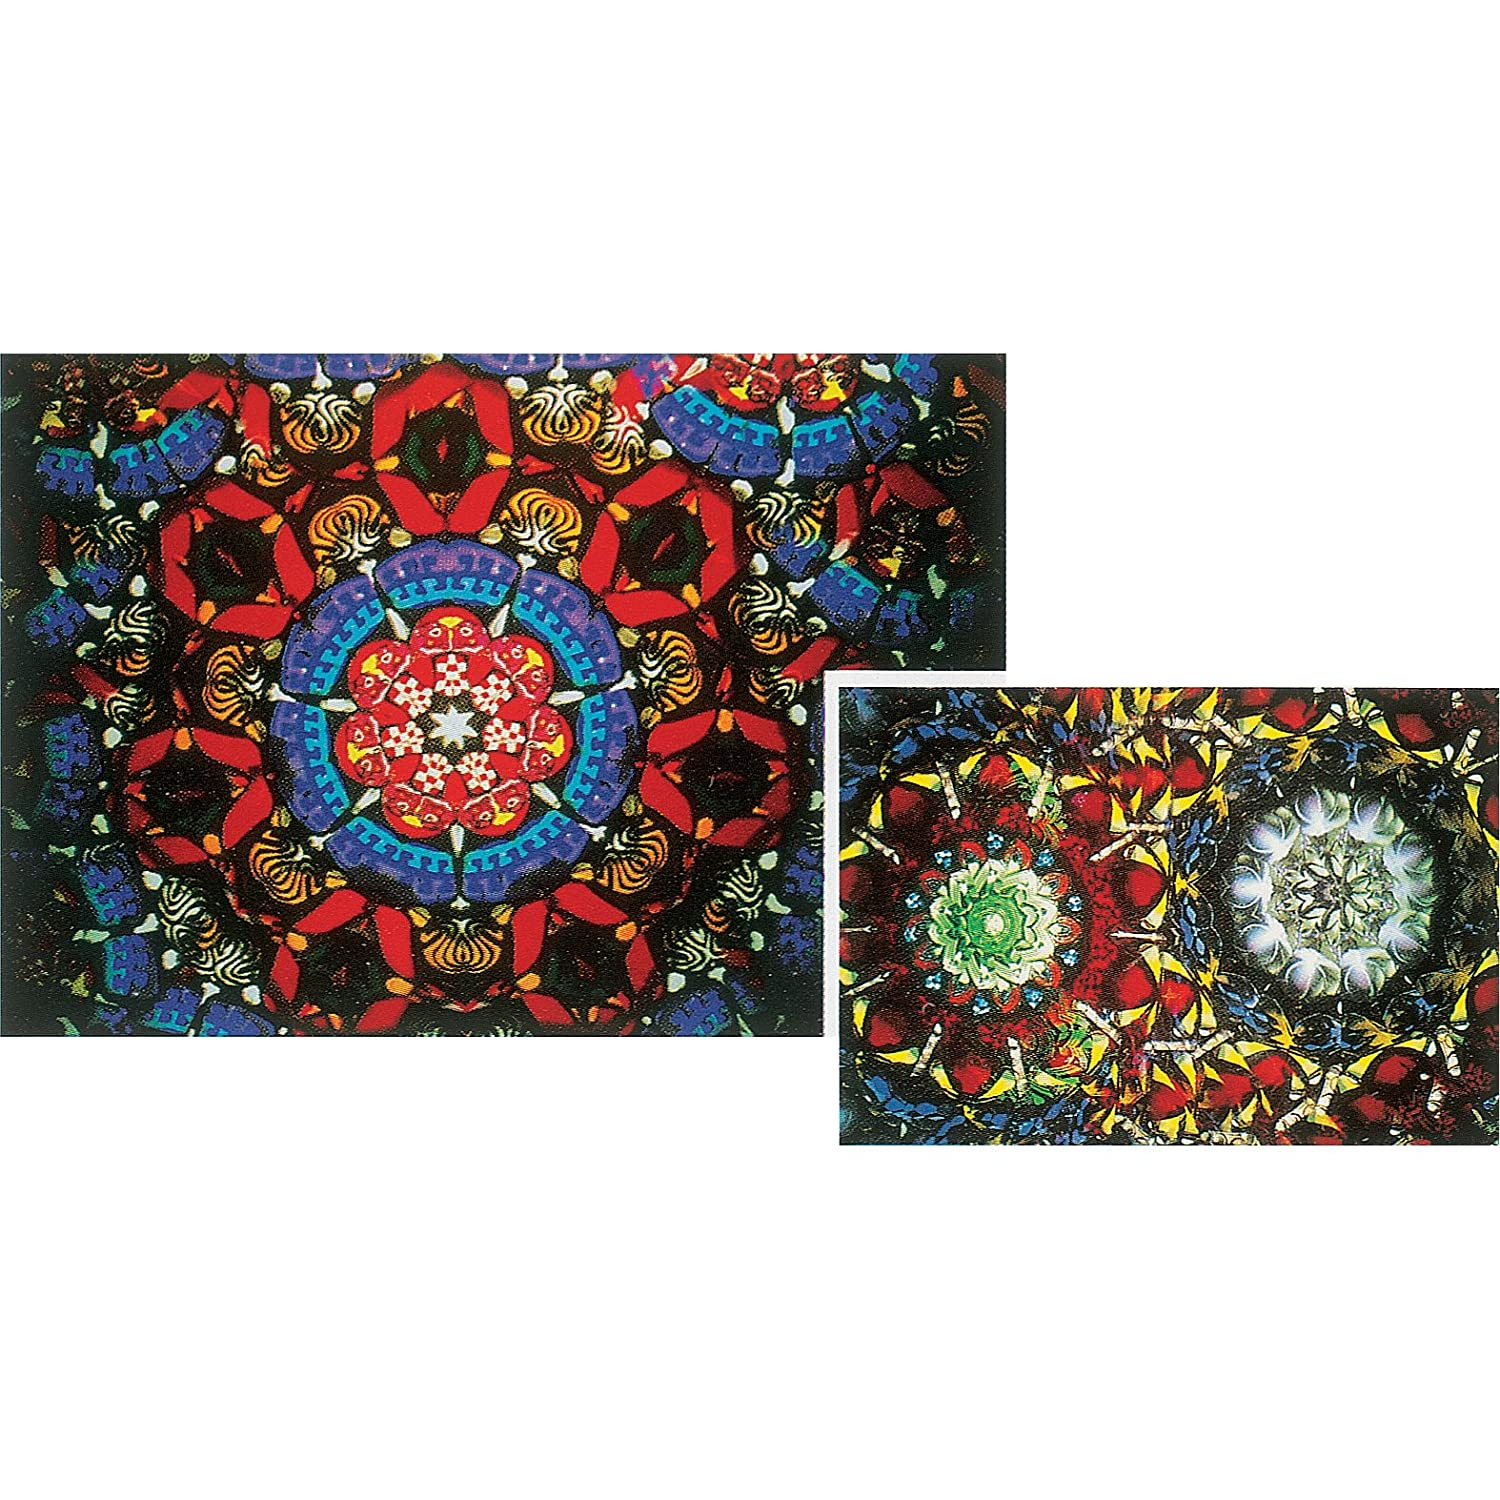 See The Light Kaleidoscope Bits and Pieces Colorful Kaleidoscope Toy